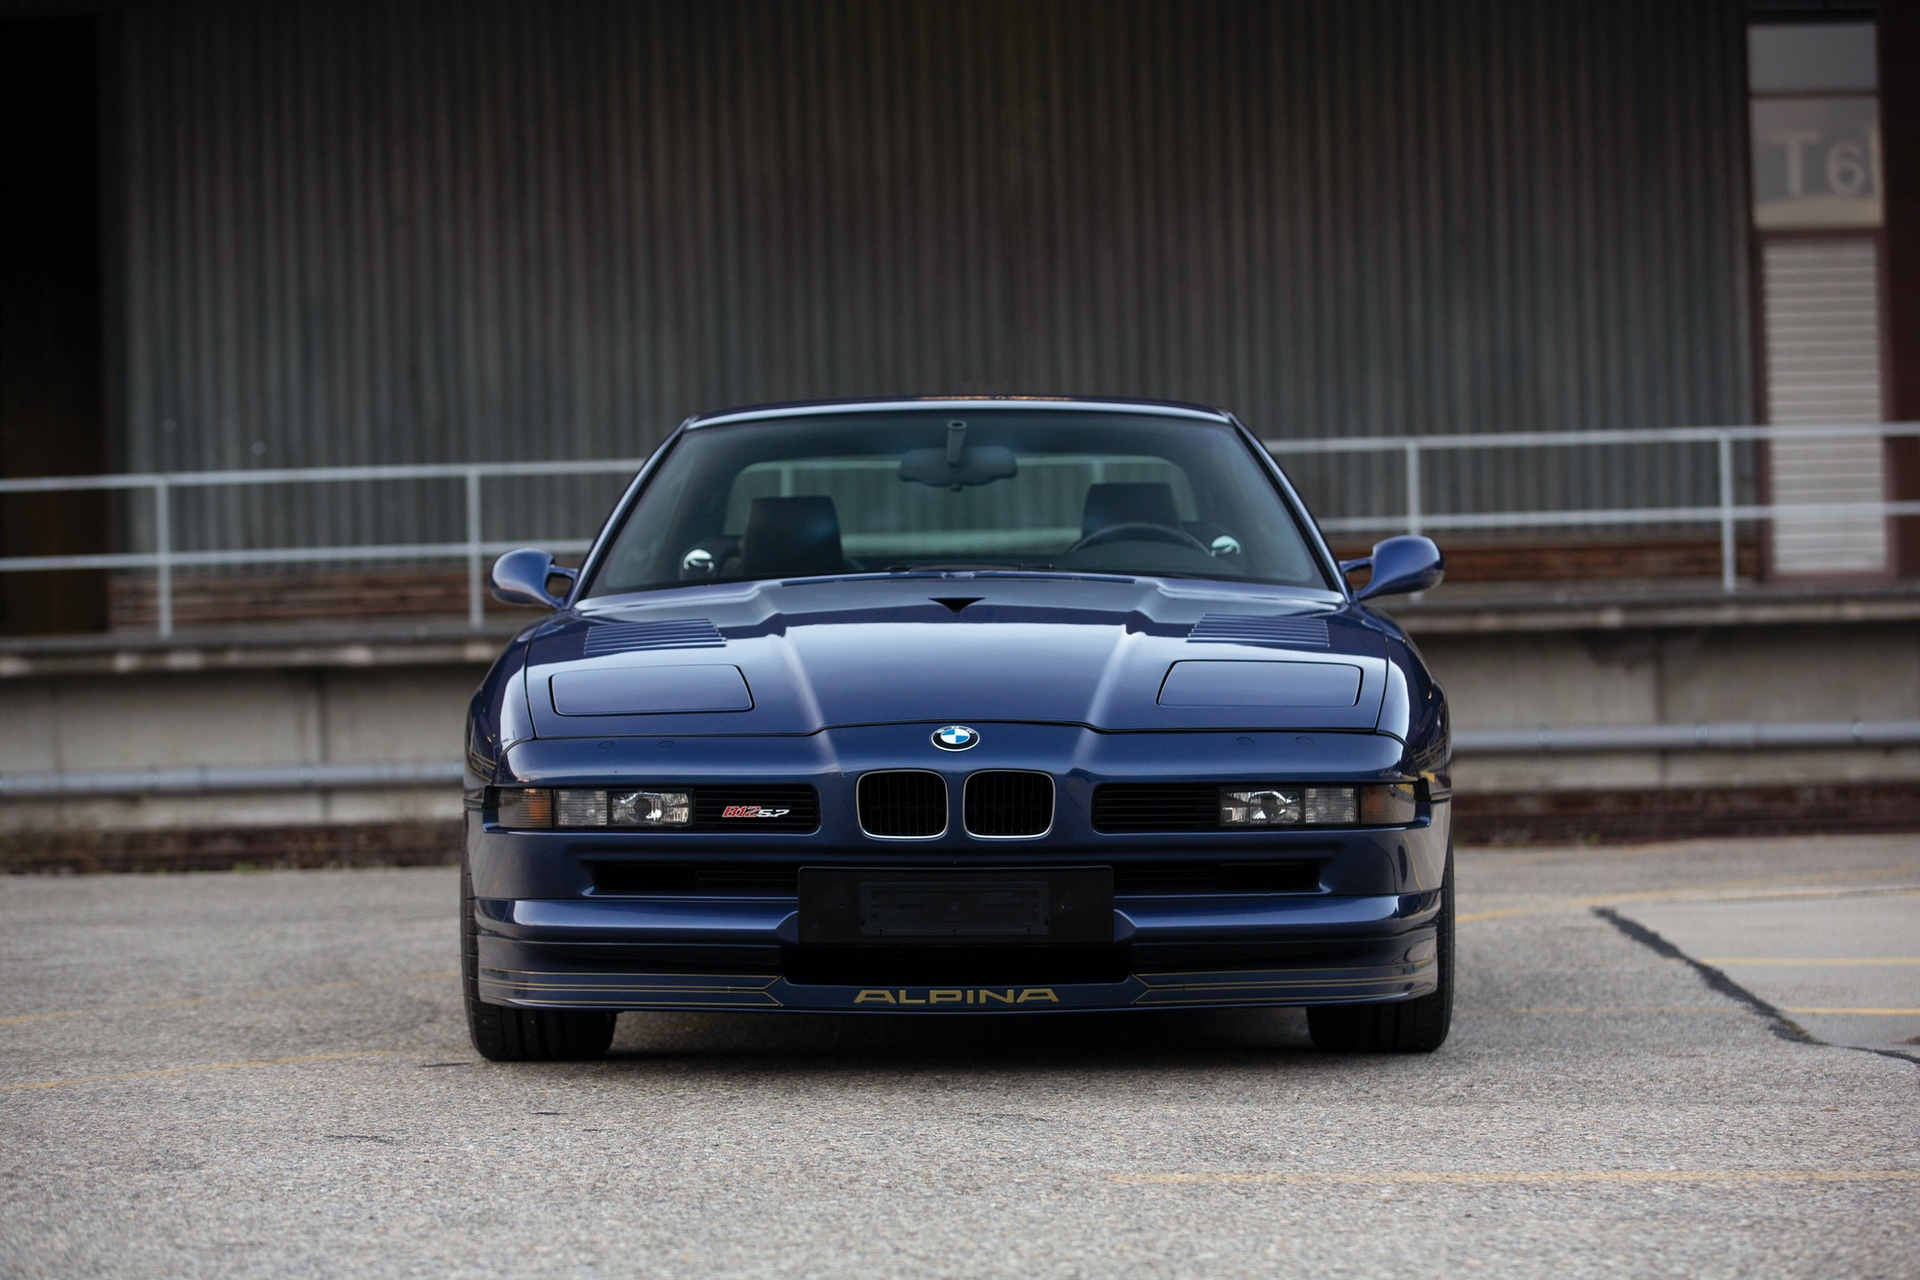 1993-BMW-Alpina-B12-5-7-Coupe-_7